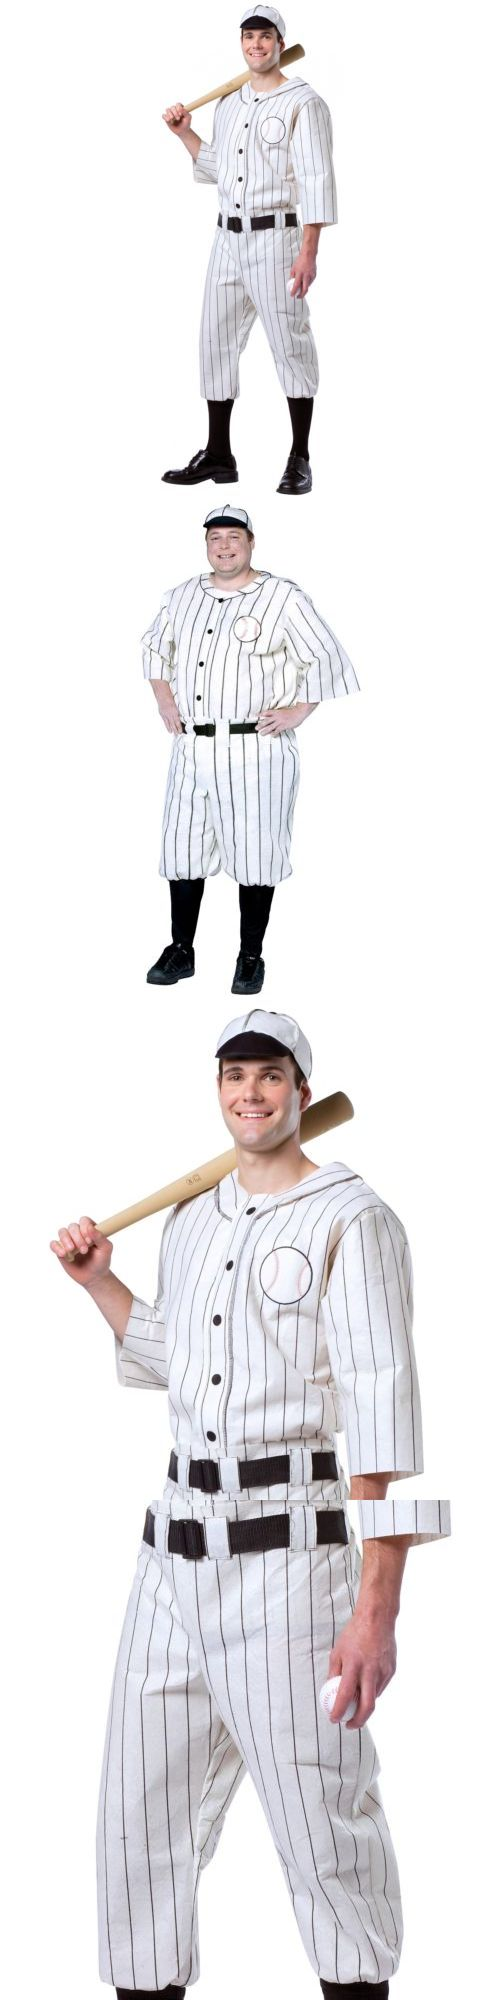 men 52762: baseball costume adult roaring 20s player babe ruth